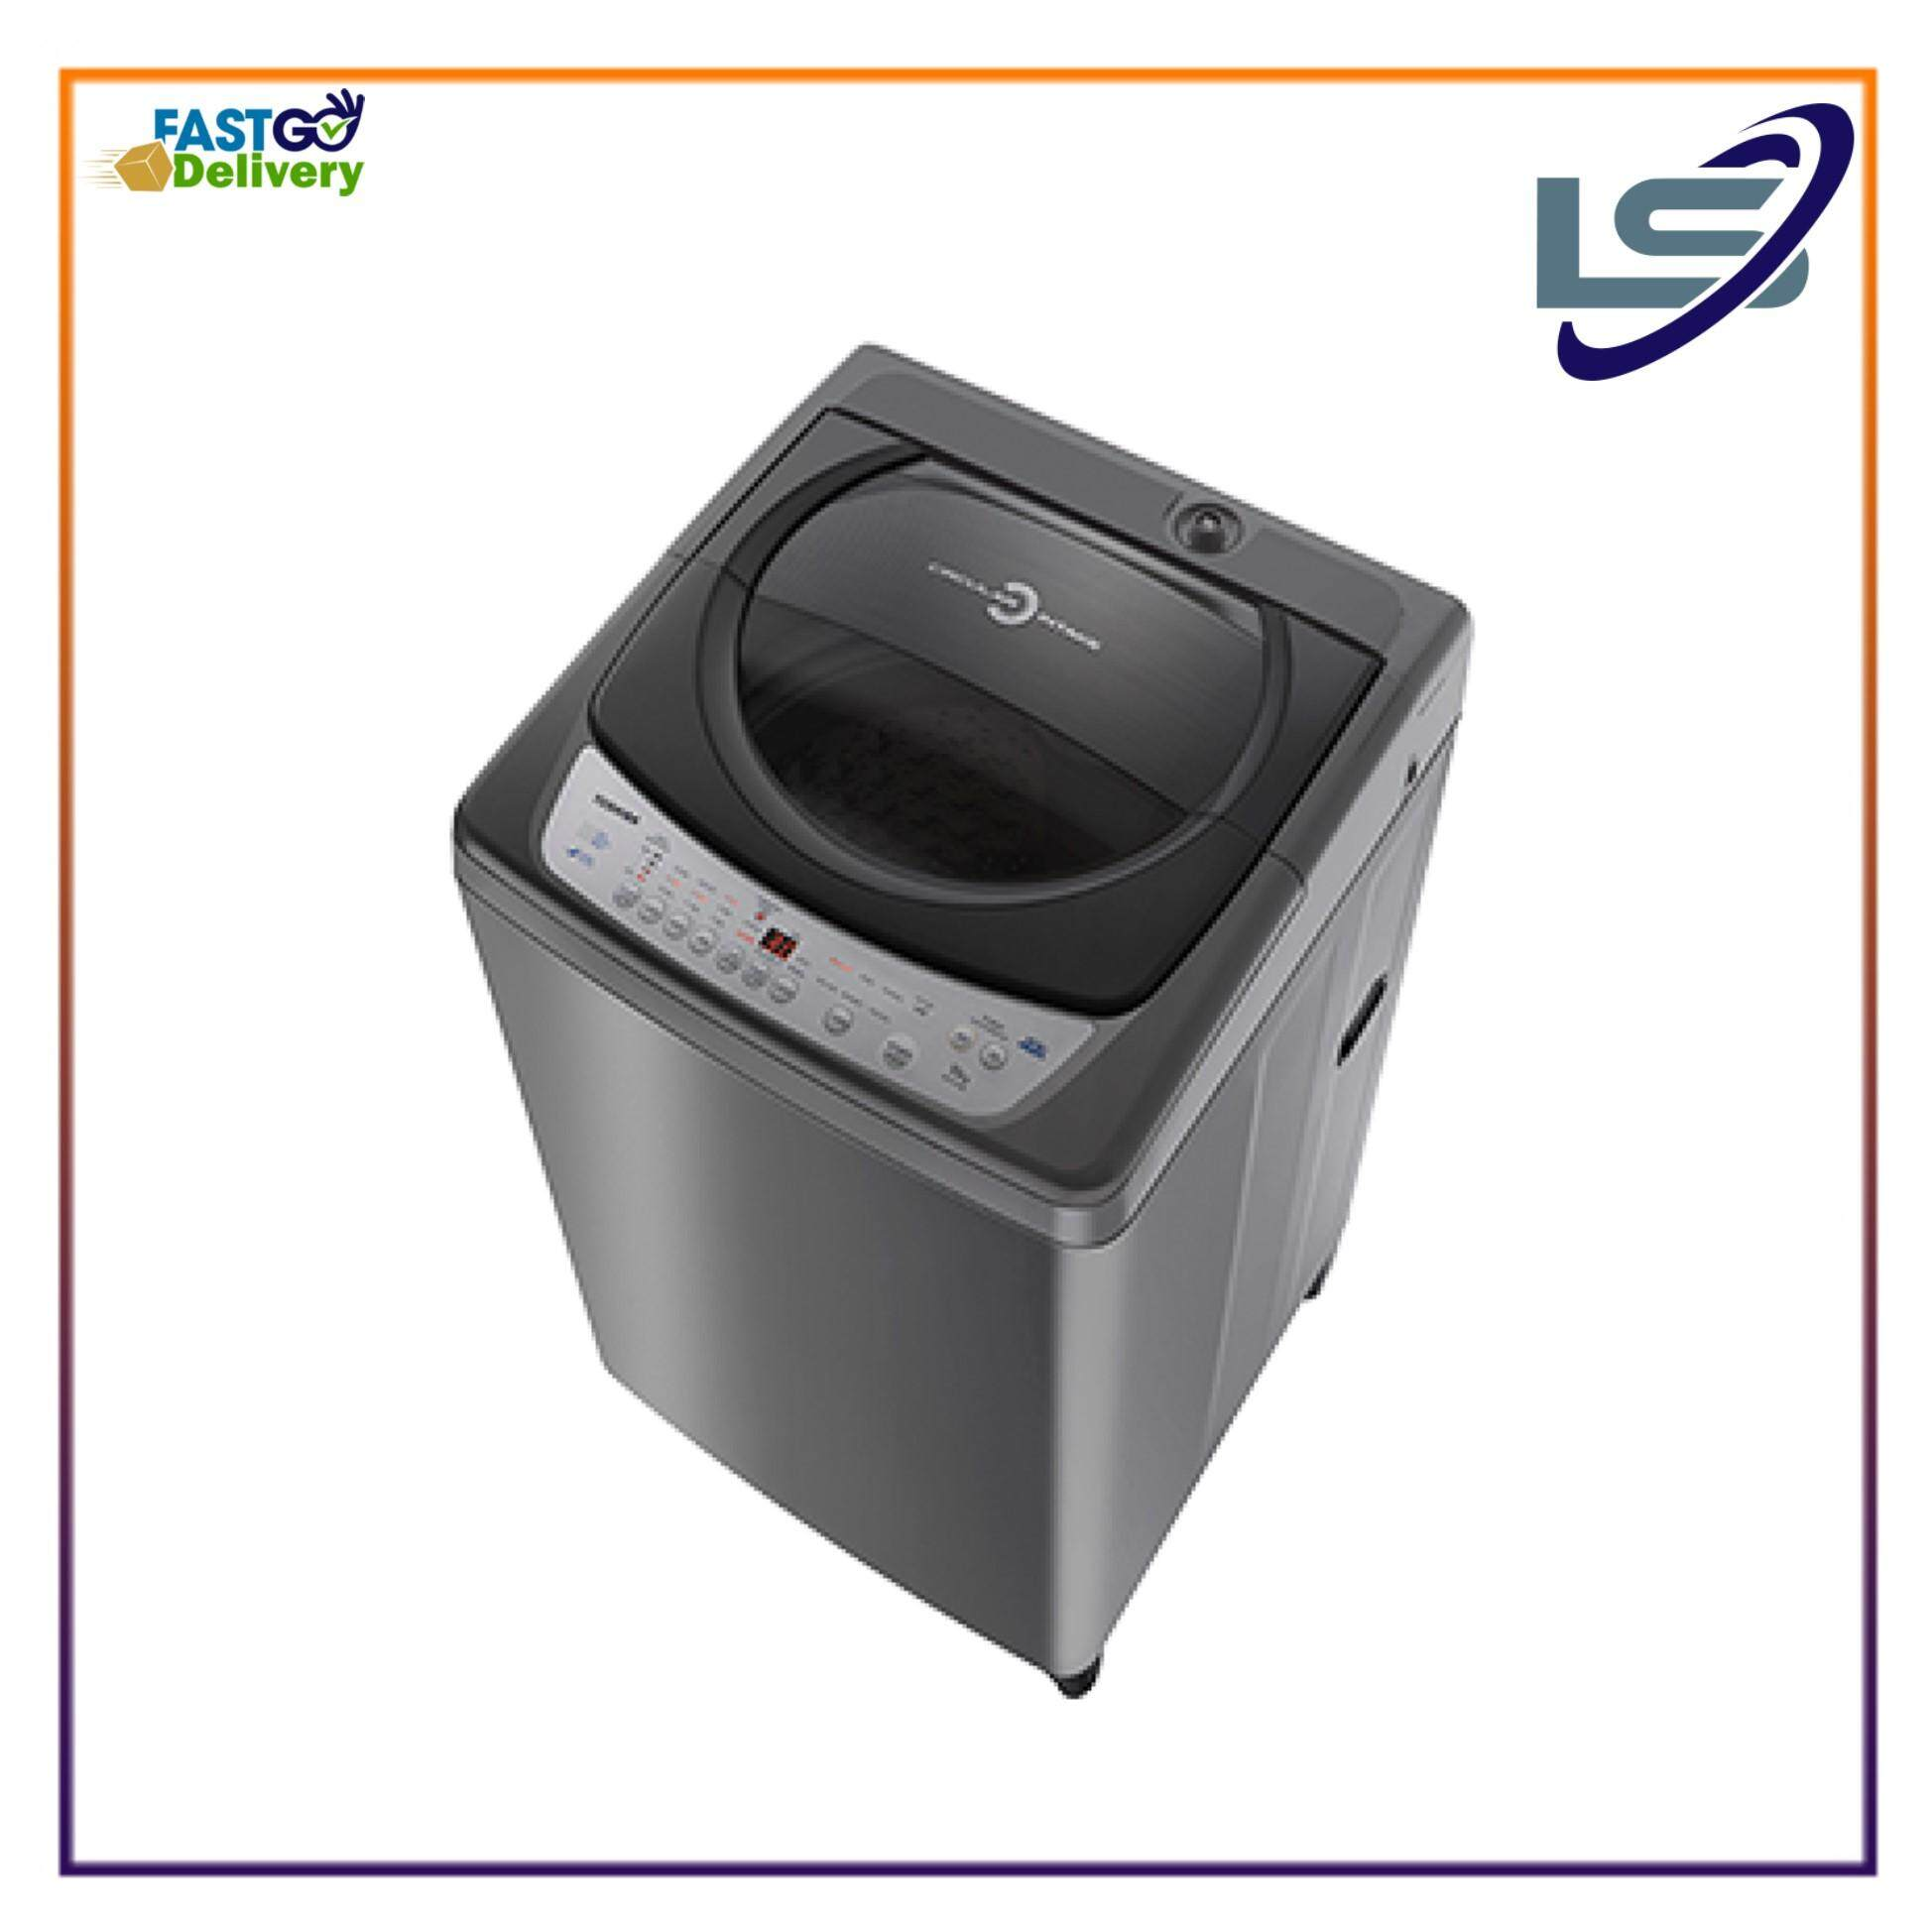 Toshiba AW-H1100GM Fully Auto Washer 10.0KG